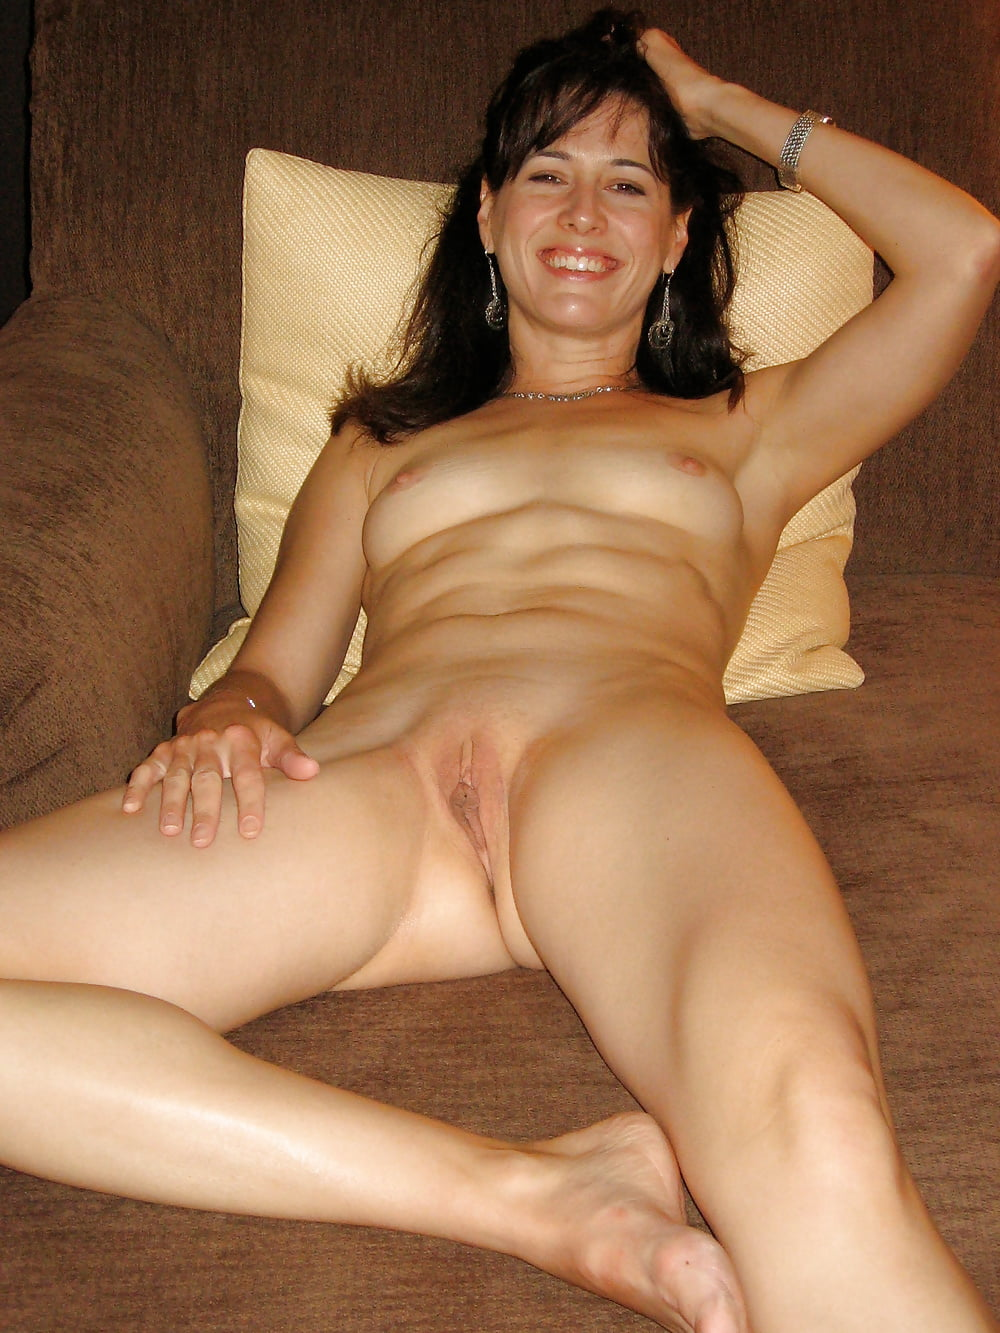 mature-milf-private-nude-video-game-naked-man